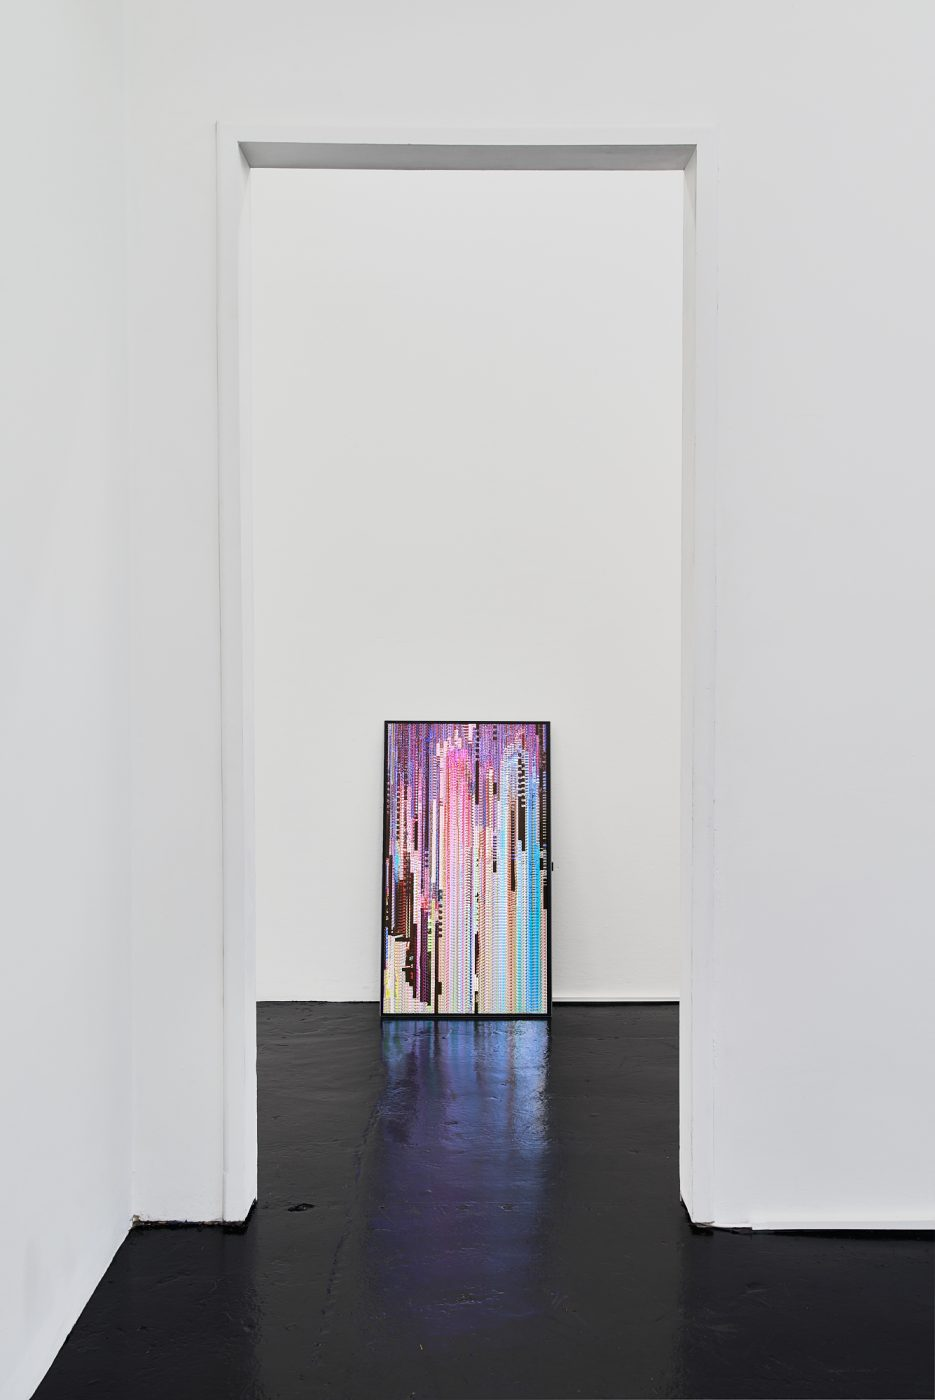 Chris Dorland: Active User, 2020 Installation views Nicoletti Contemporary, London Photographs by Theo Christelis